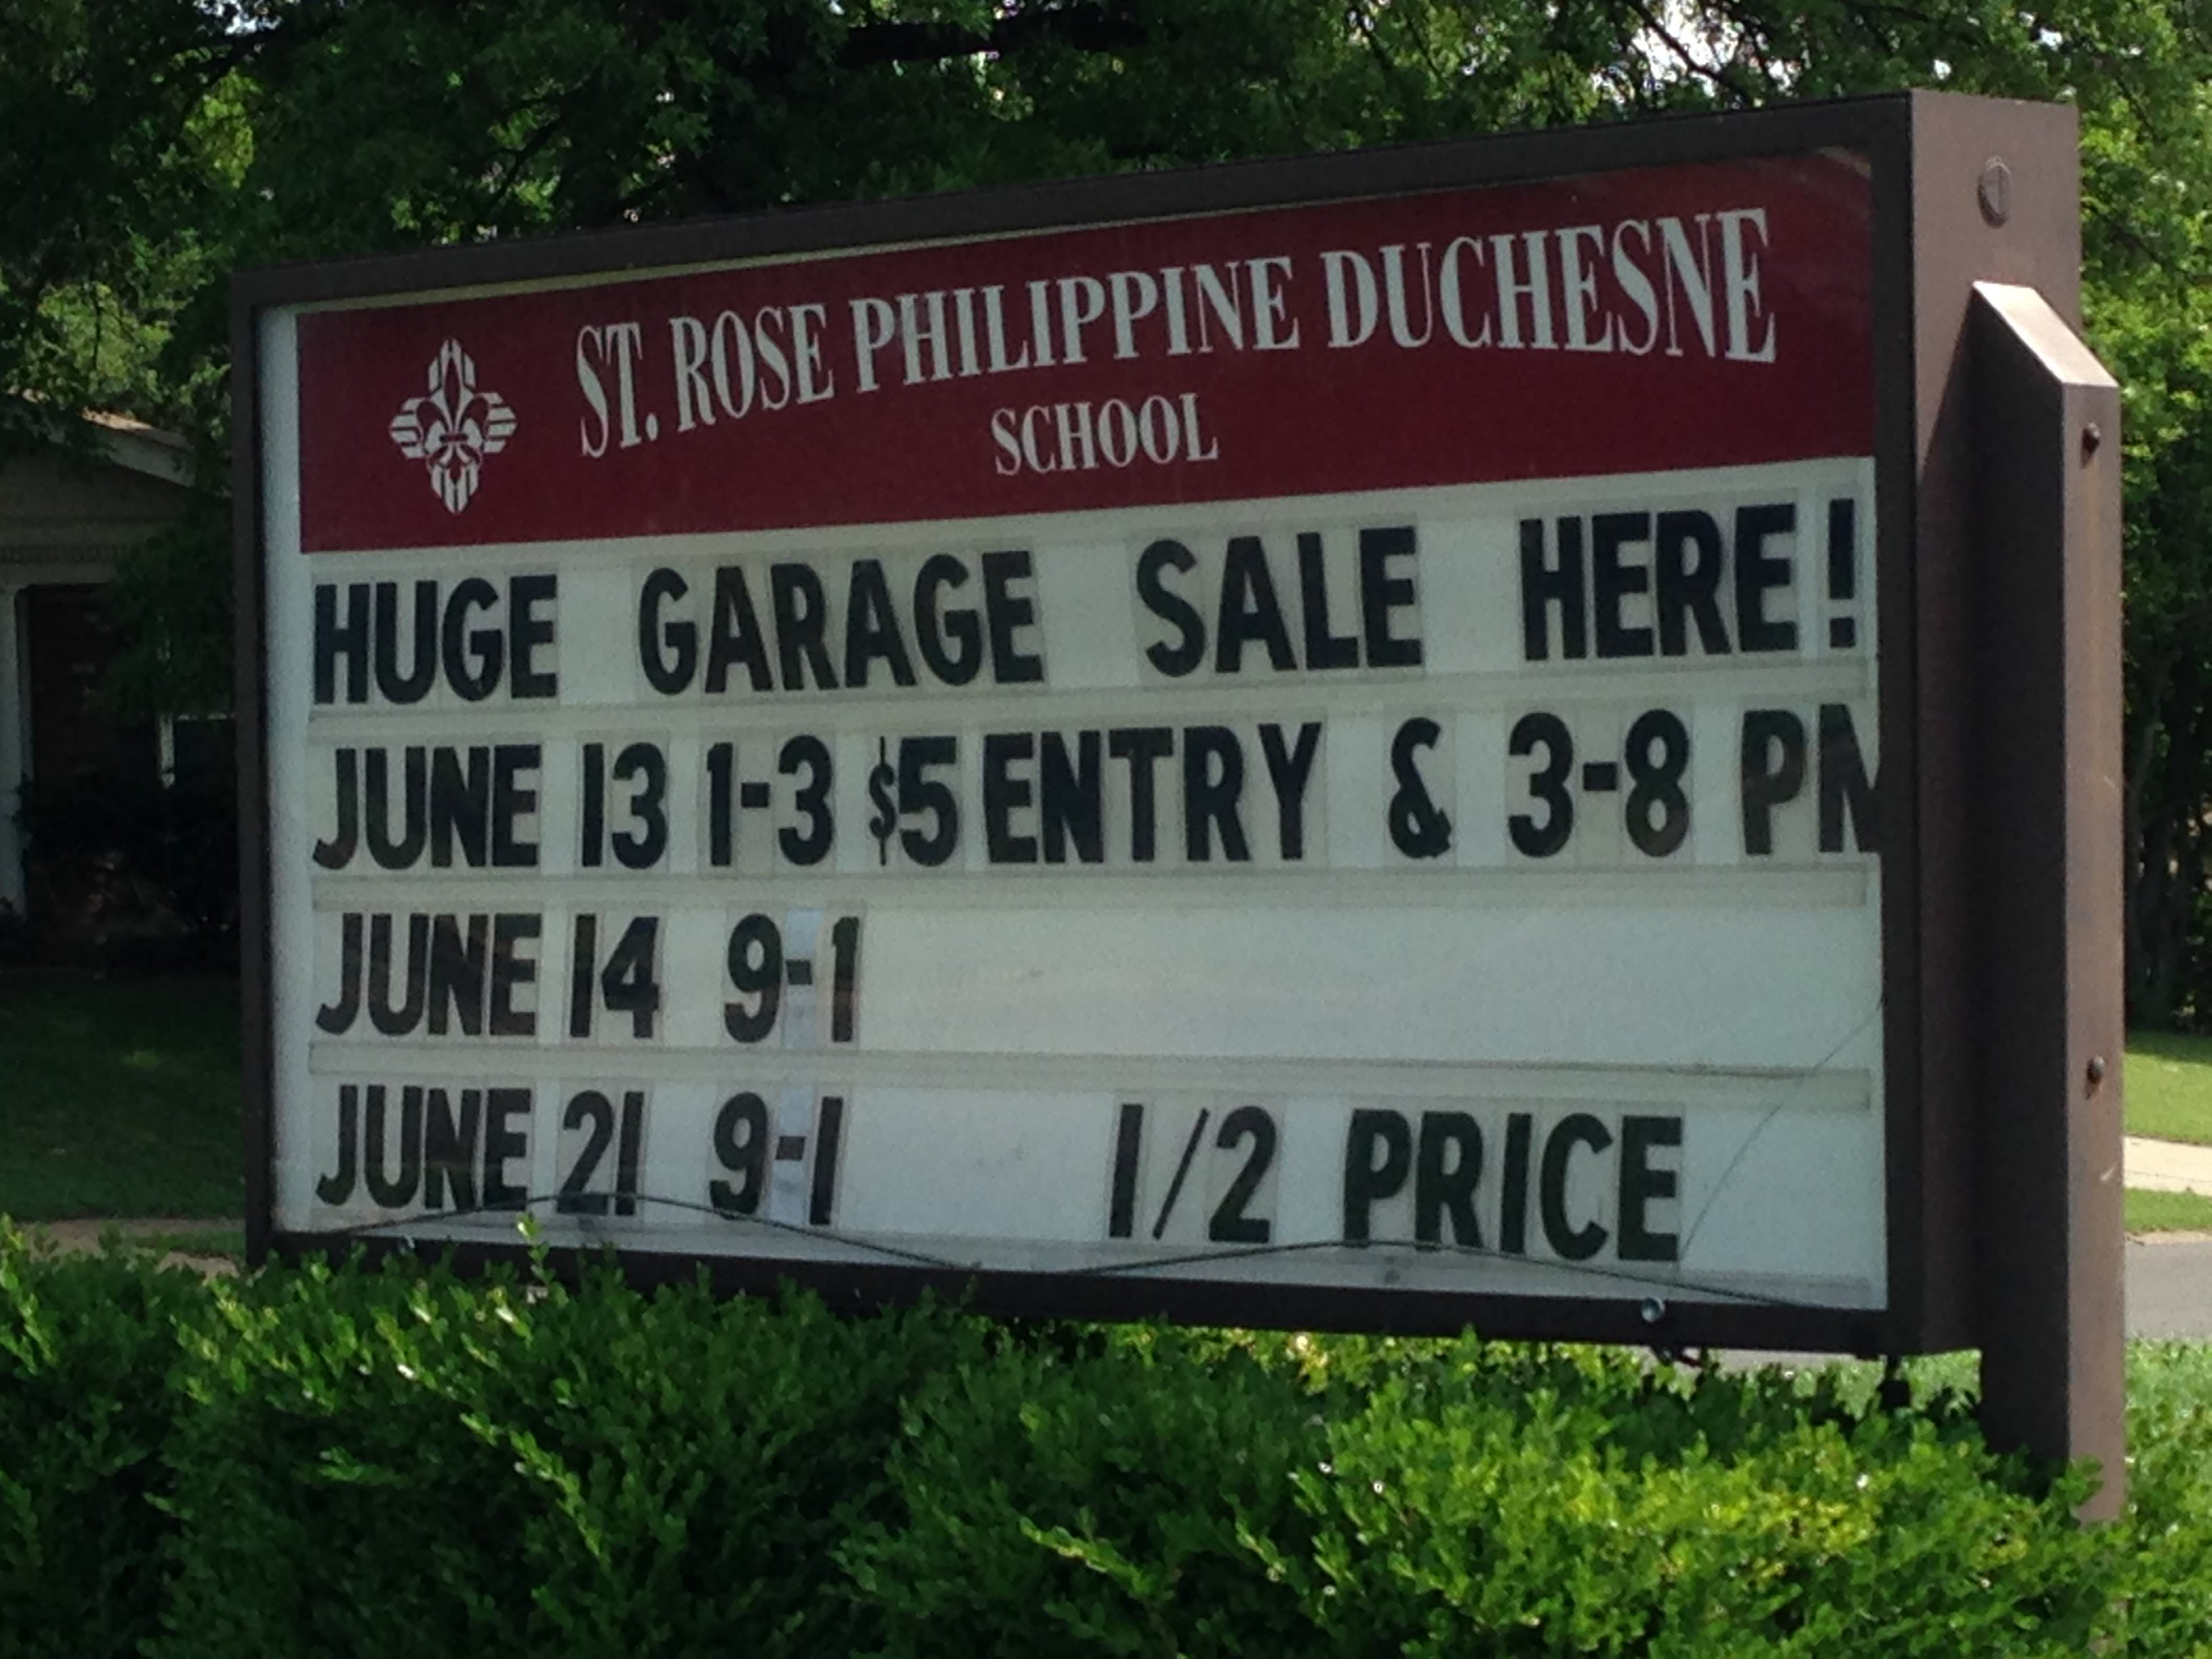 Huge Garage Sale at St. Rose - June 13 & 14